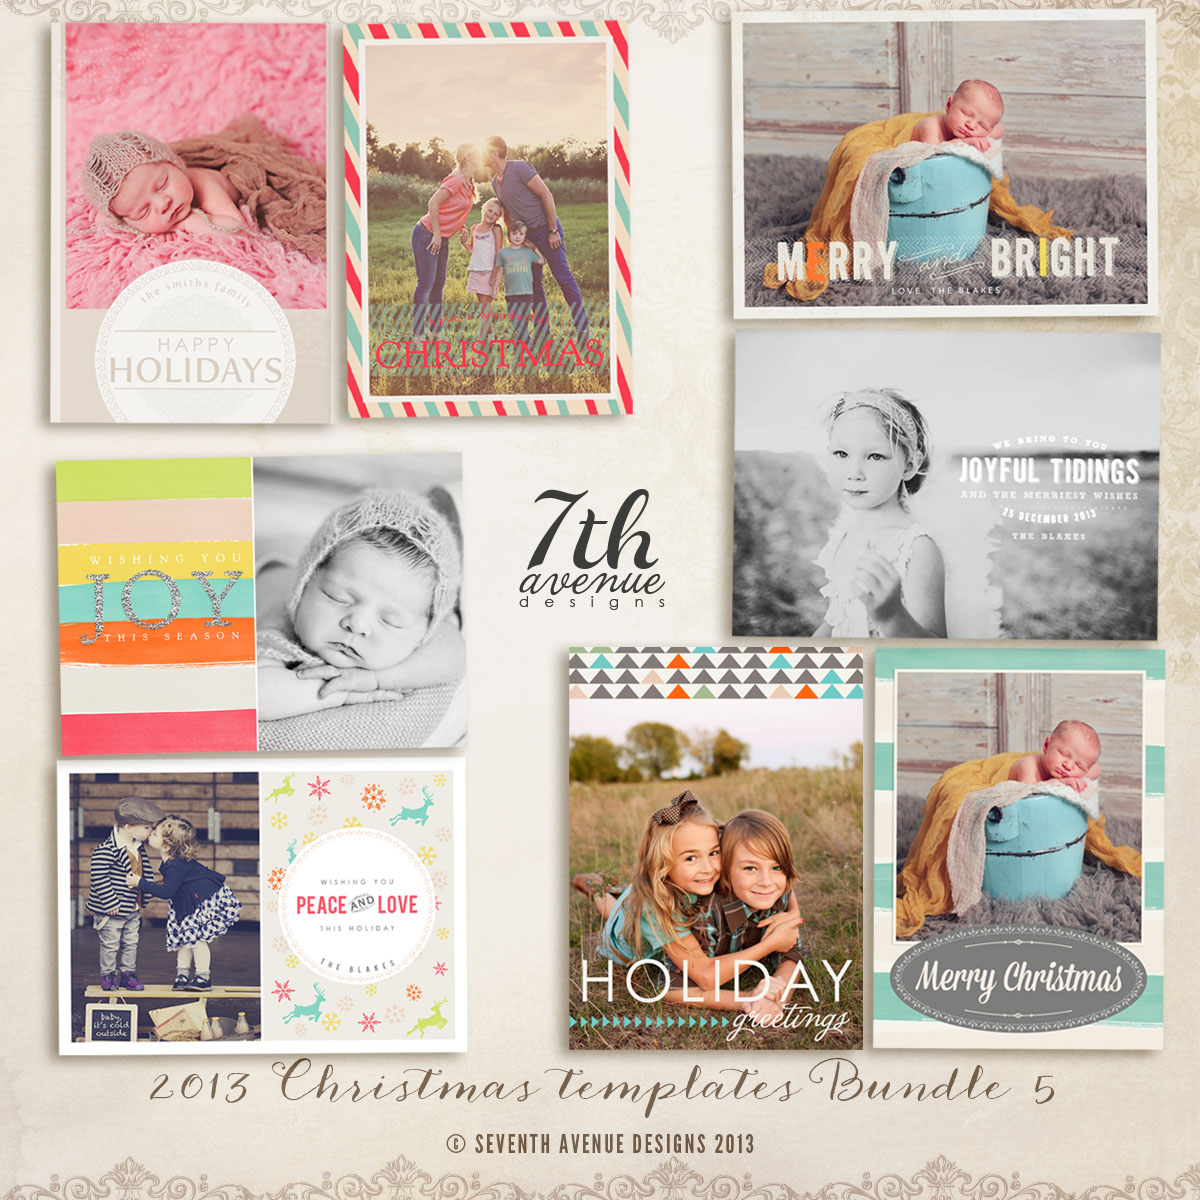 2013 Christmas Card Templates Bundle 5